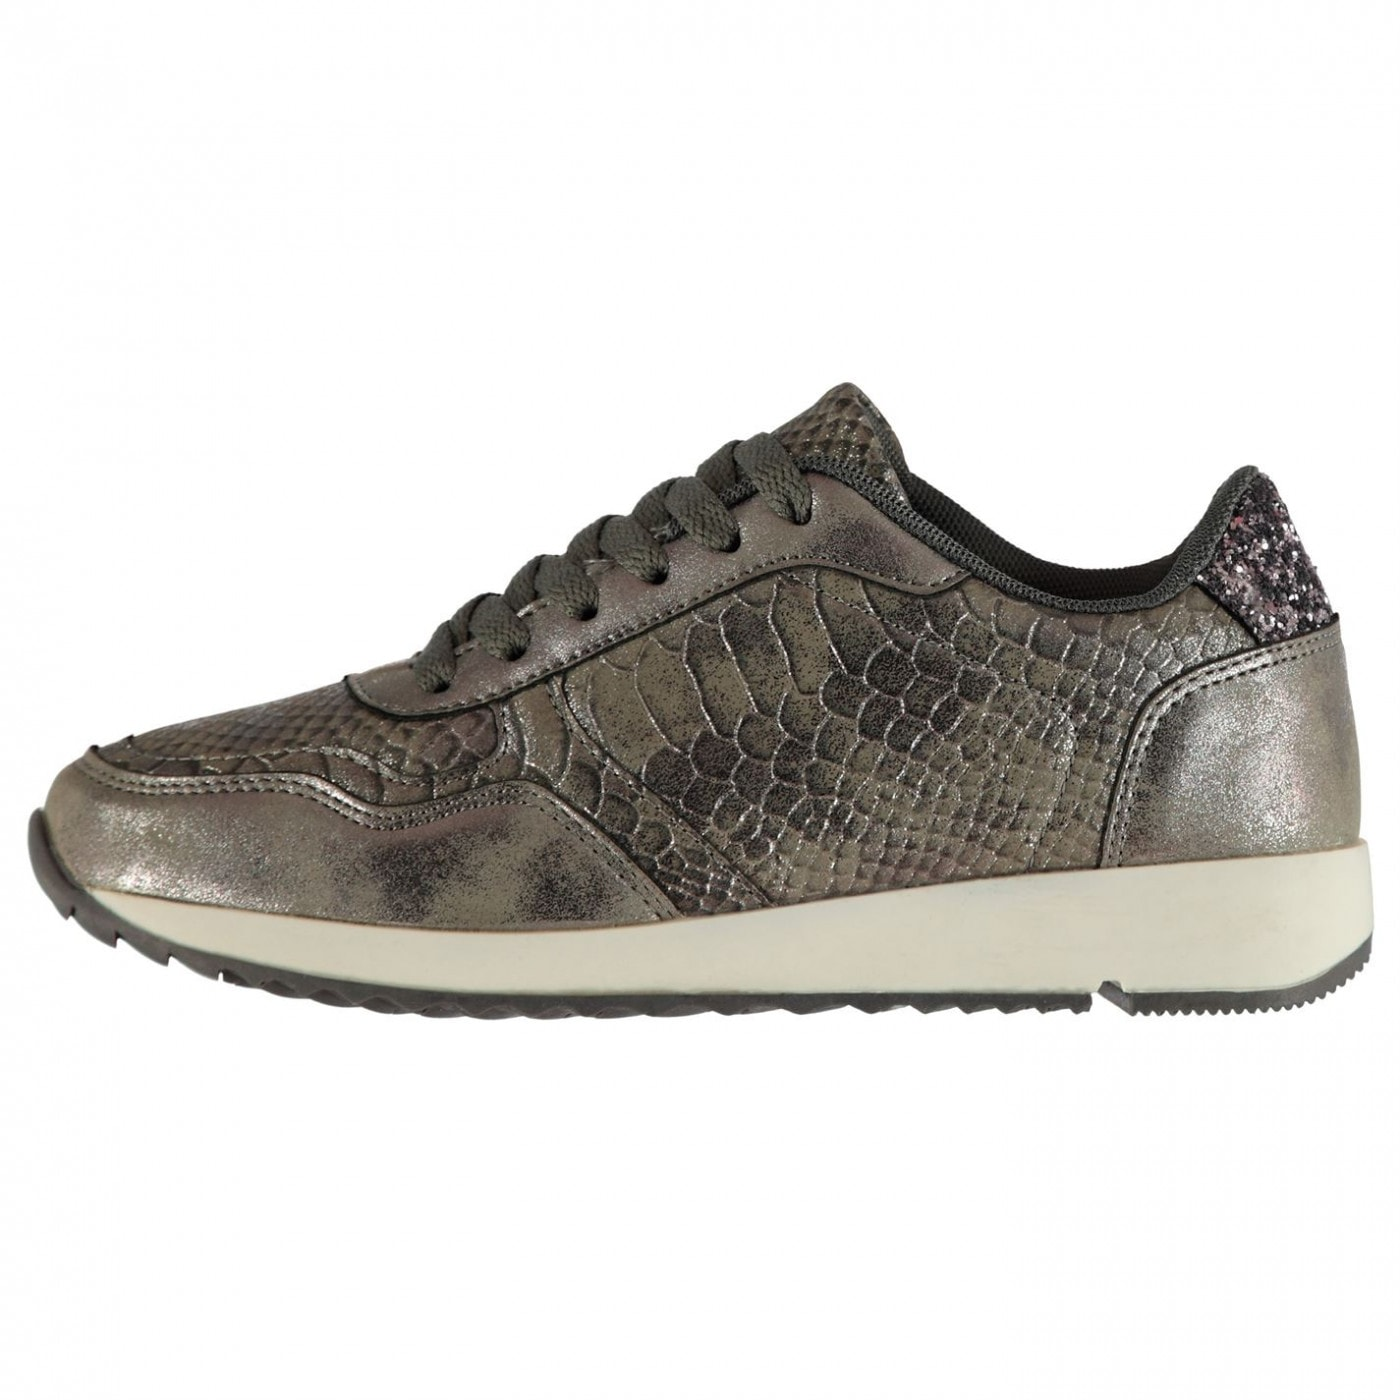 Lee Cooper Snakeskin Ladies Trainers